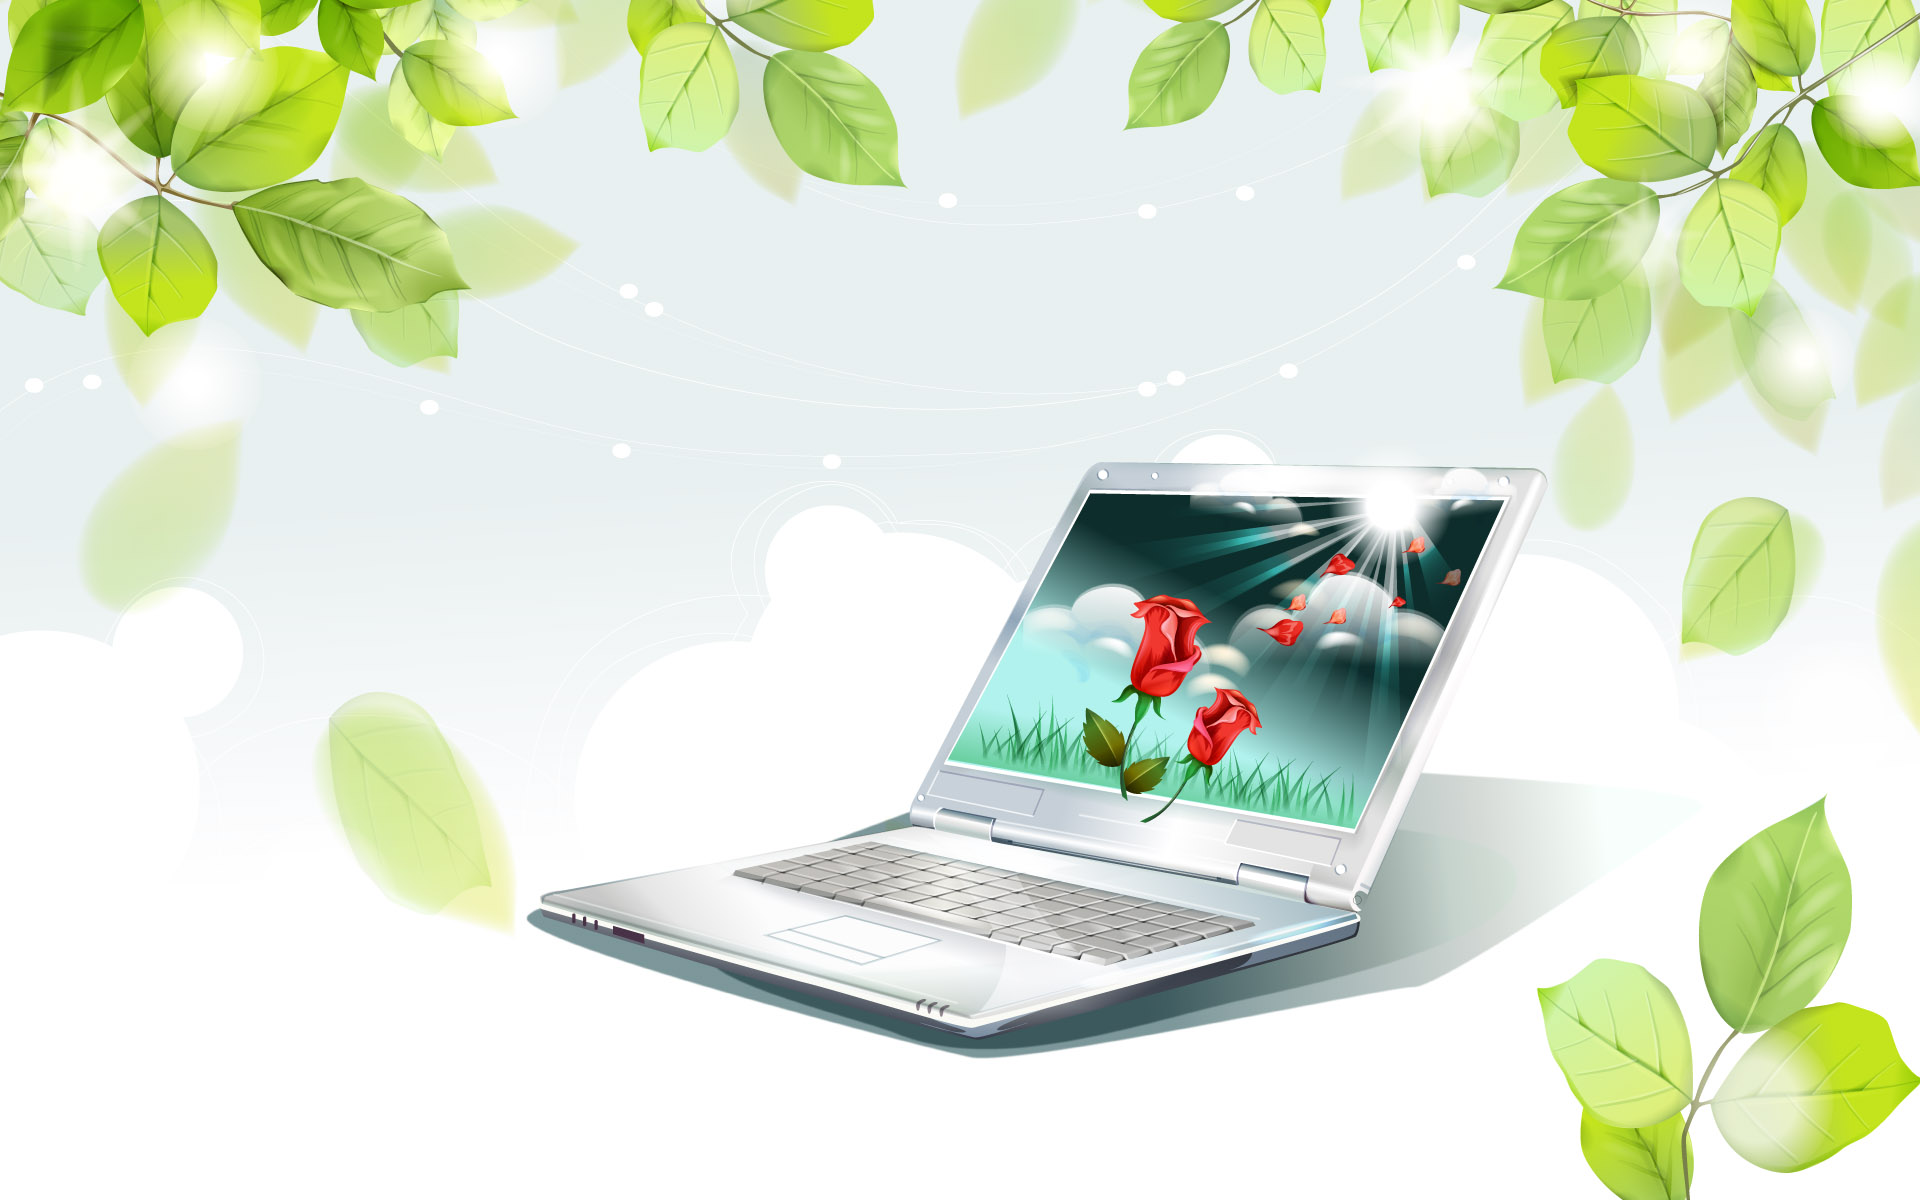 Computer notebook PPT Backgrounds